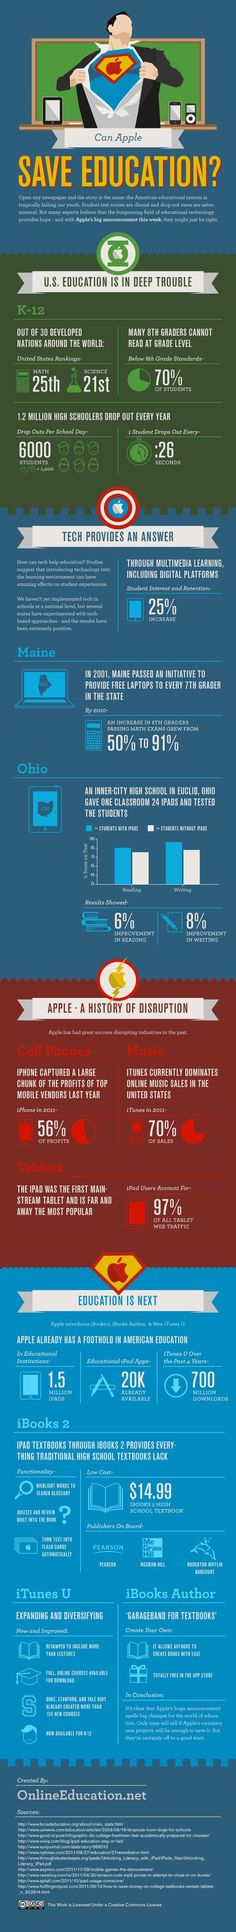 Educational infographic : Can Apples new textbook initiative save U.S. education?(infographic)